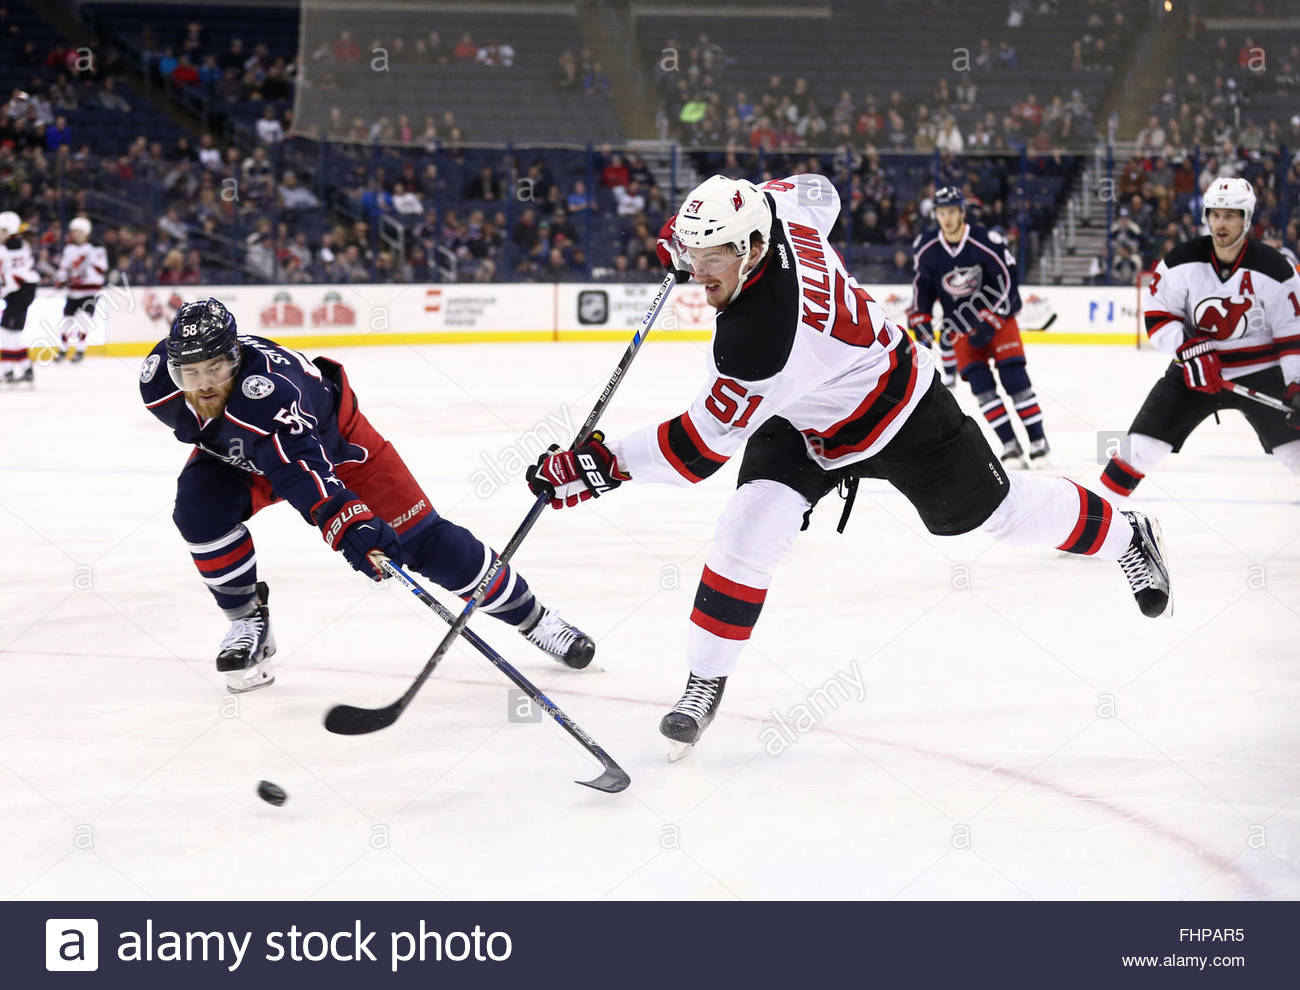 Columbus, Ohio, USA. 25th Feb, 2016. Columbus Blue Jackets defenseman David Savard (58) defends against New Jersey - Stock Image